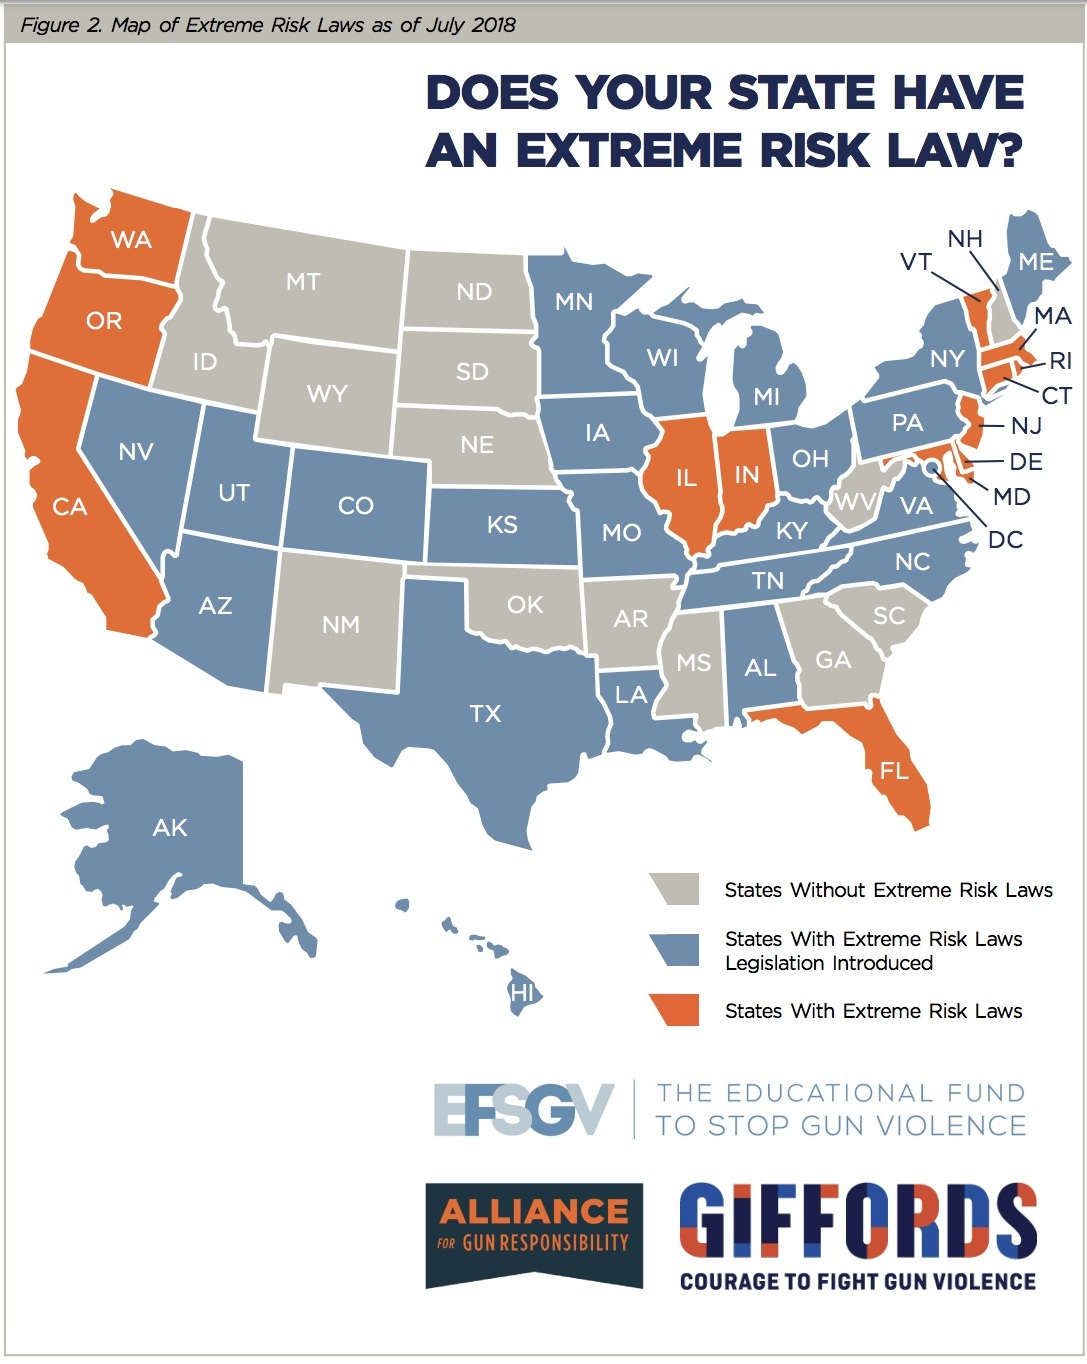 Image from the Alliance for Gun Responsibility     Extreme Risk Laws Toolkit